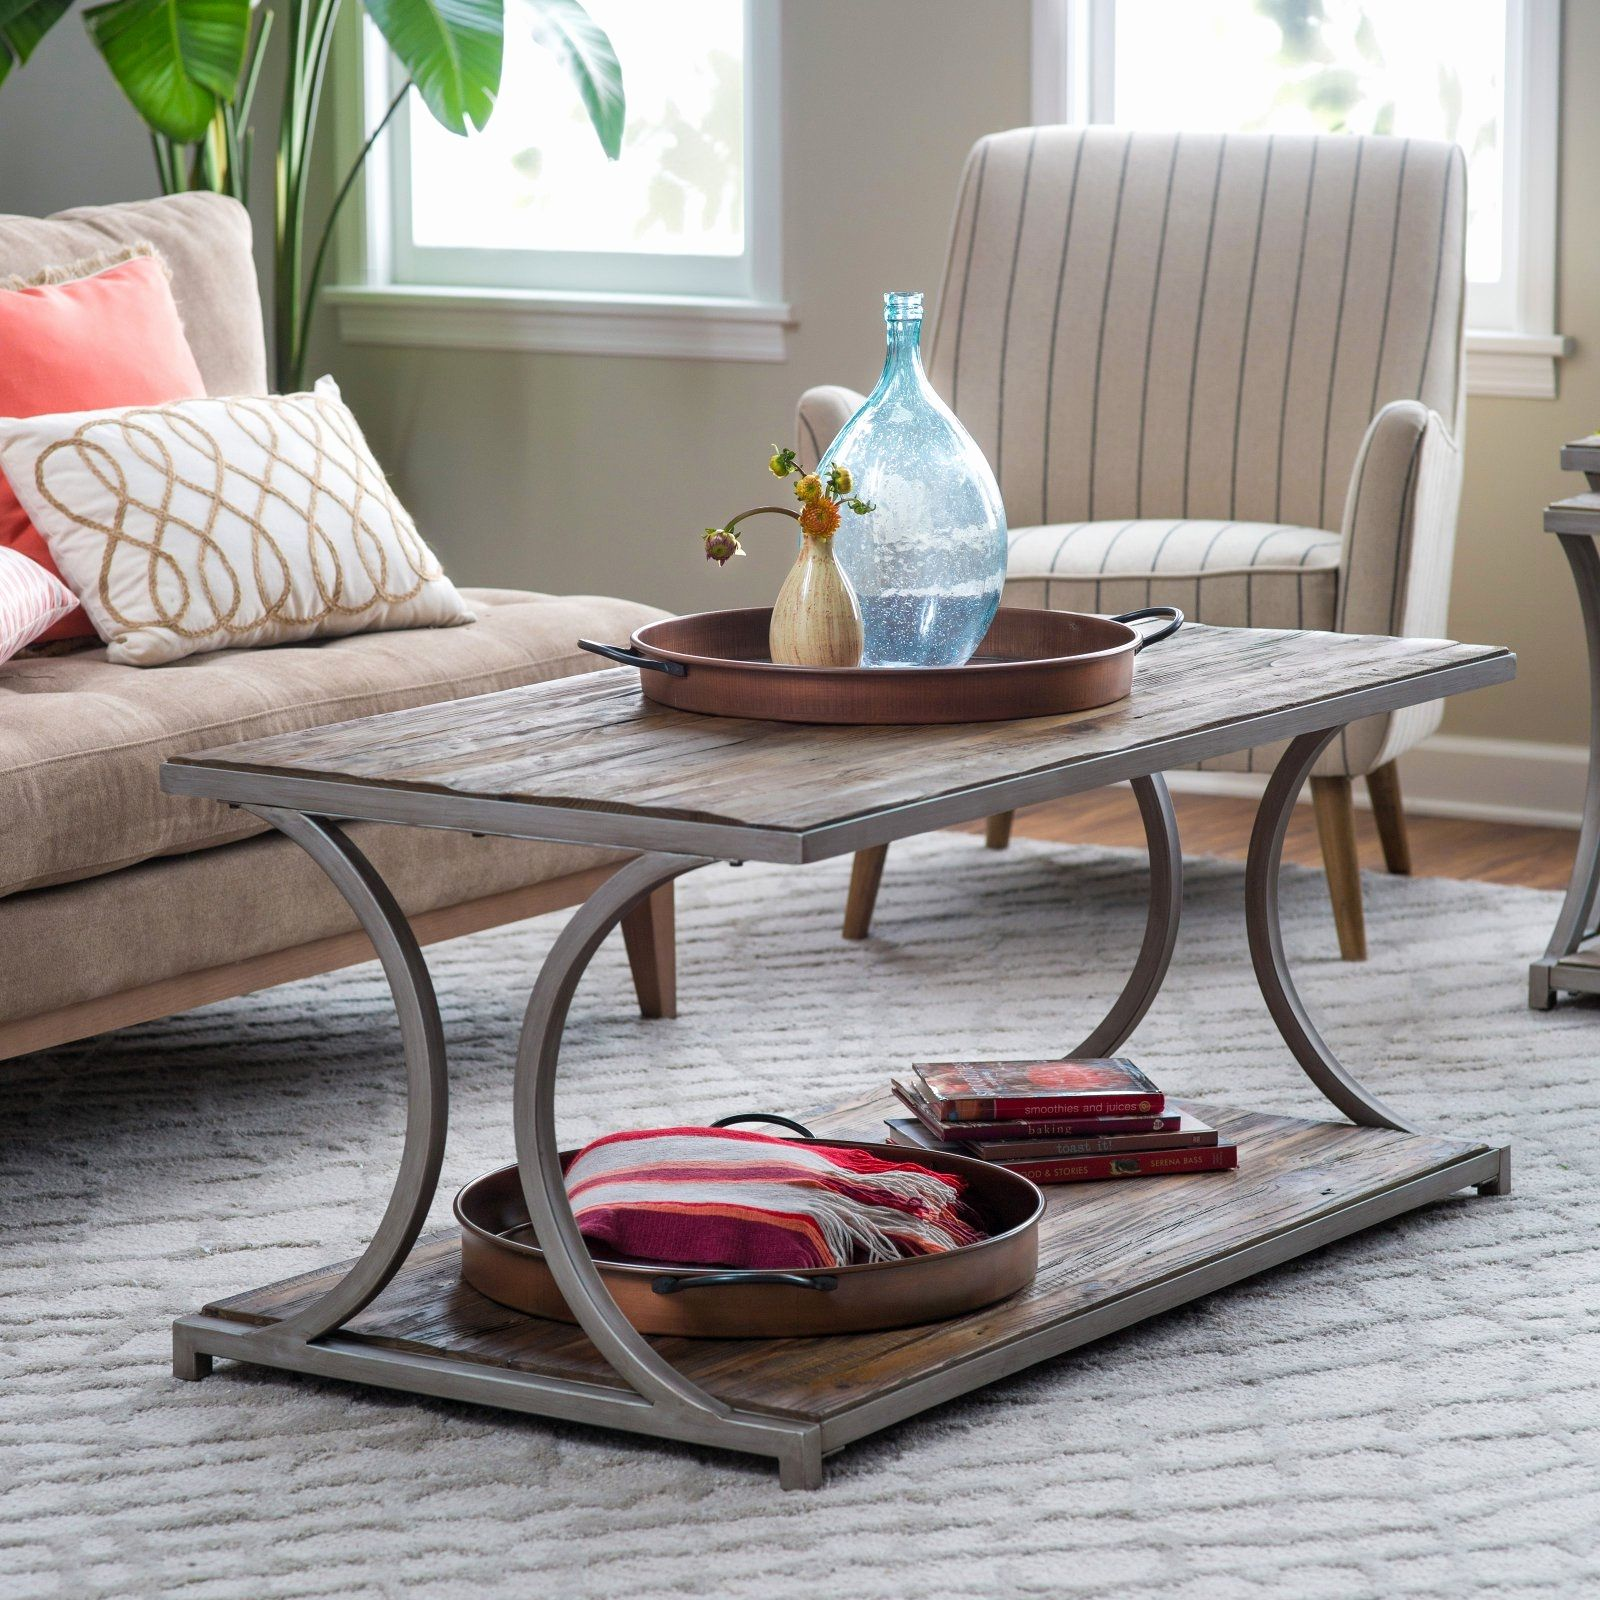 Walmart Mainstays Coffee Table Instructions Are You In The